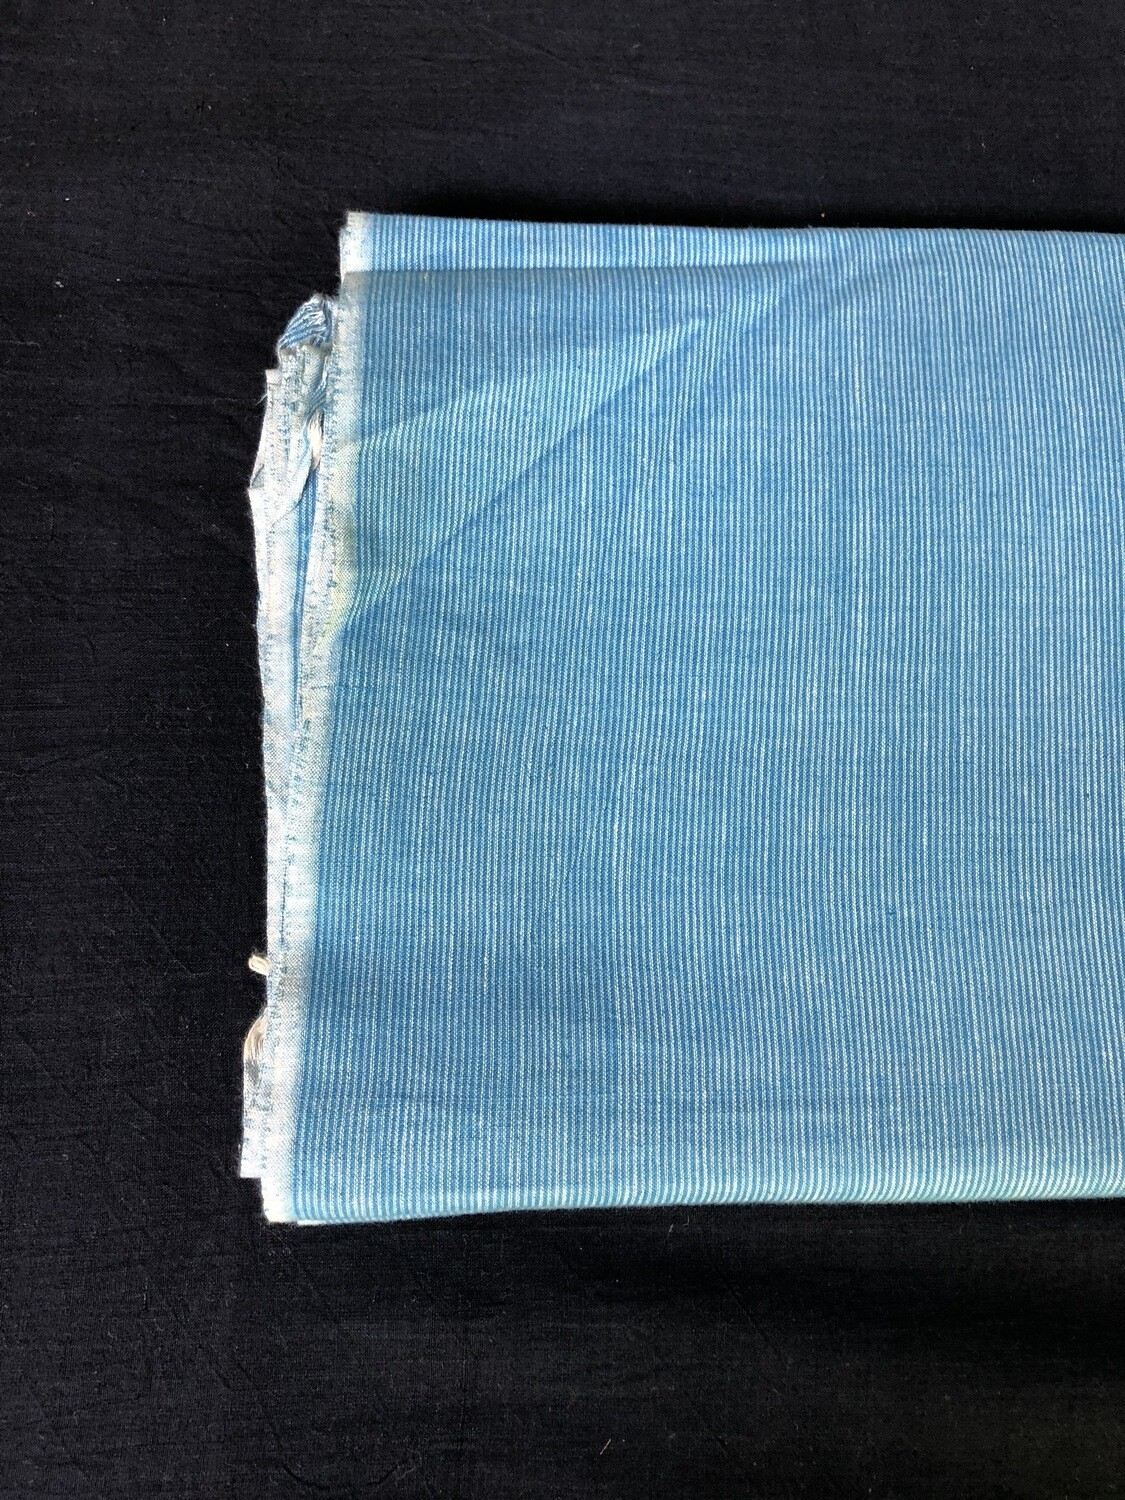 Hand Spun Hand Woven Cotton Fabric